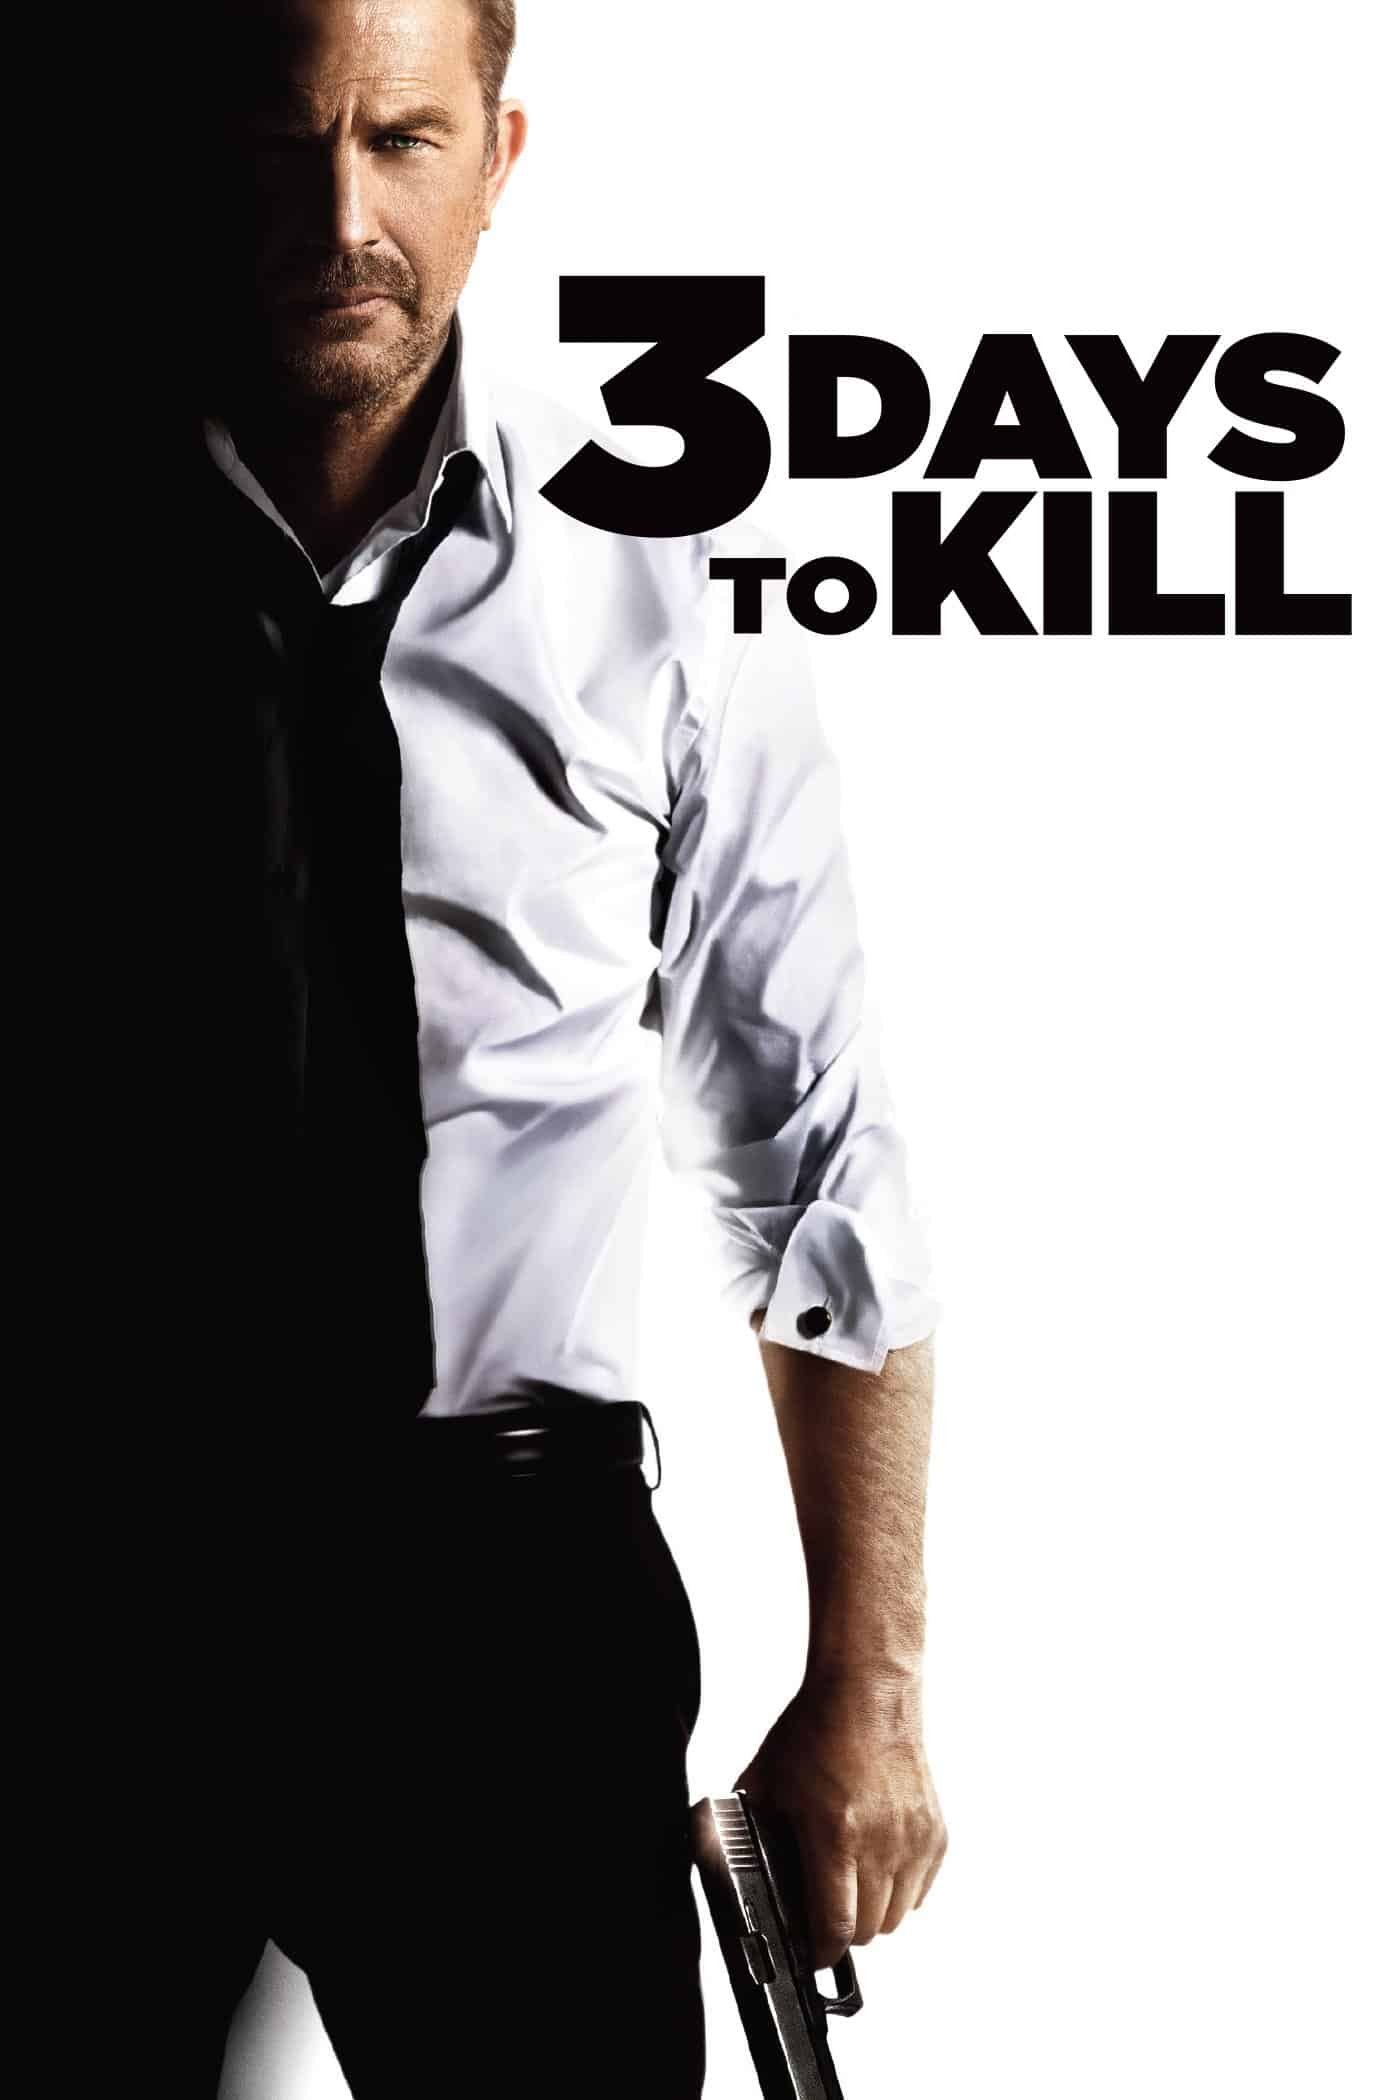 3 Days to Kill, 2014